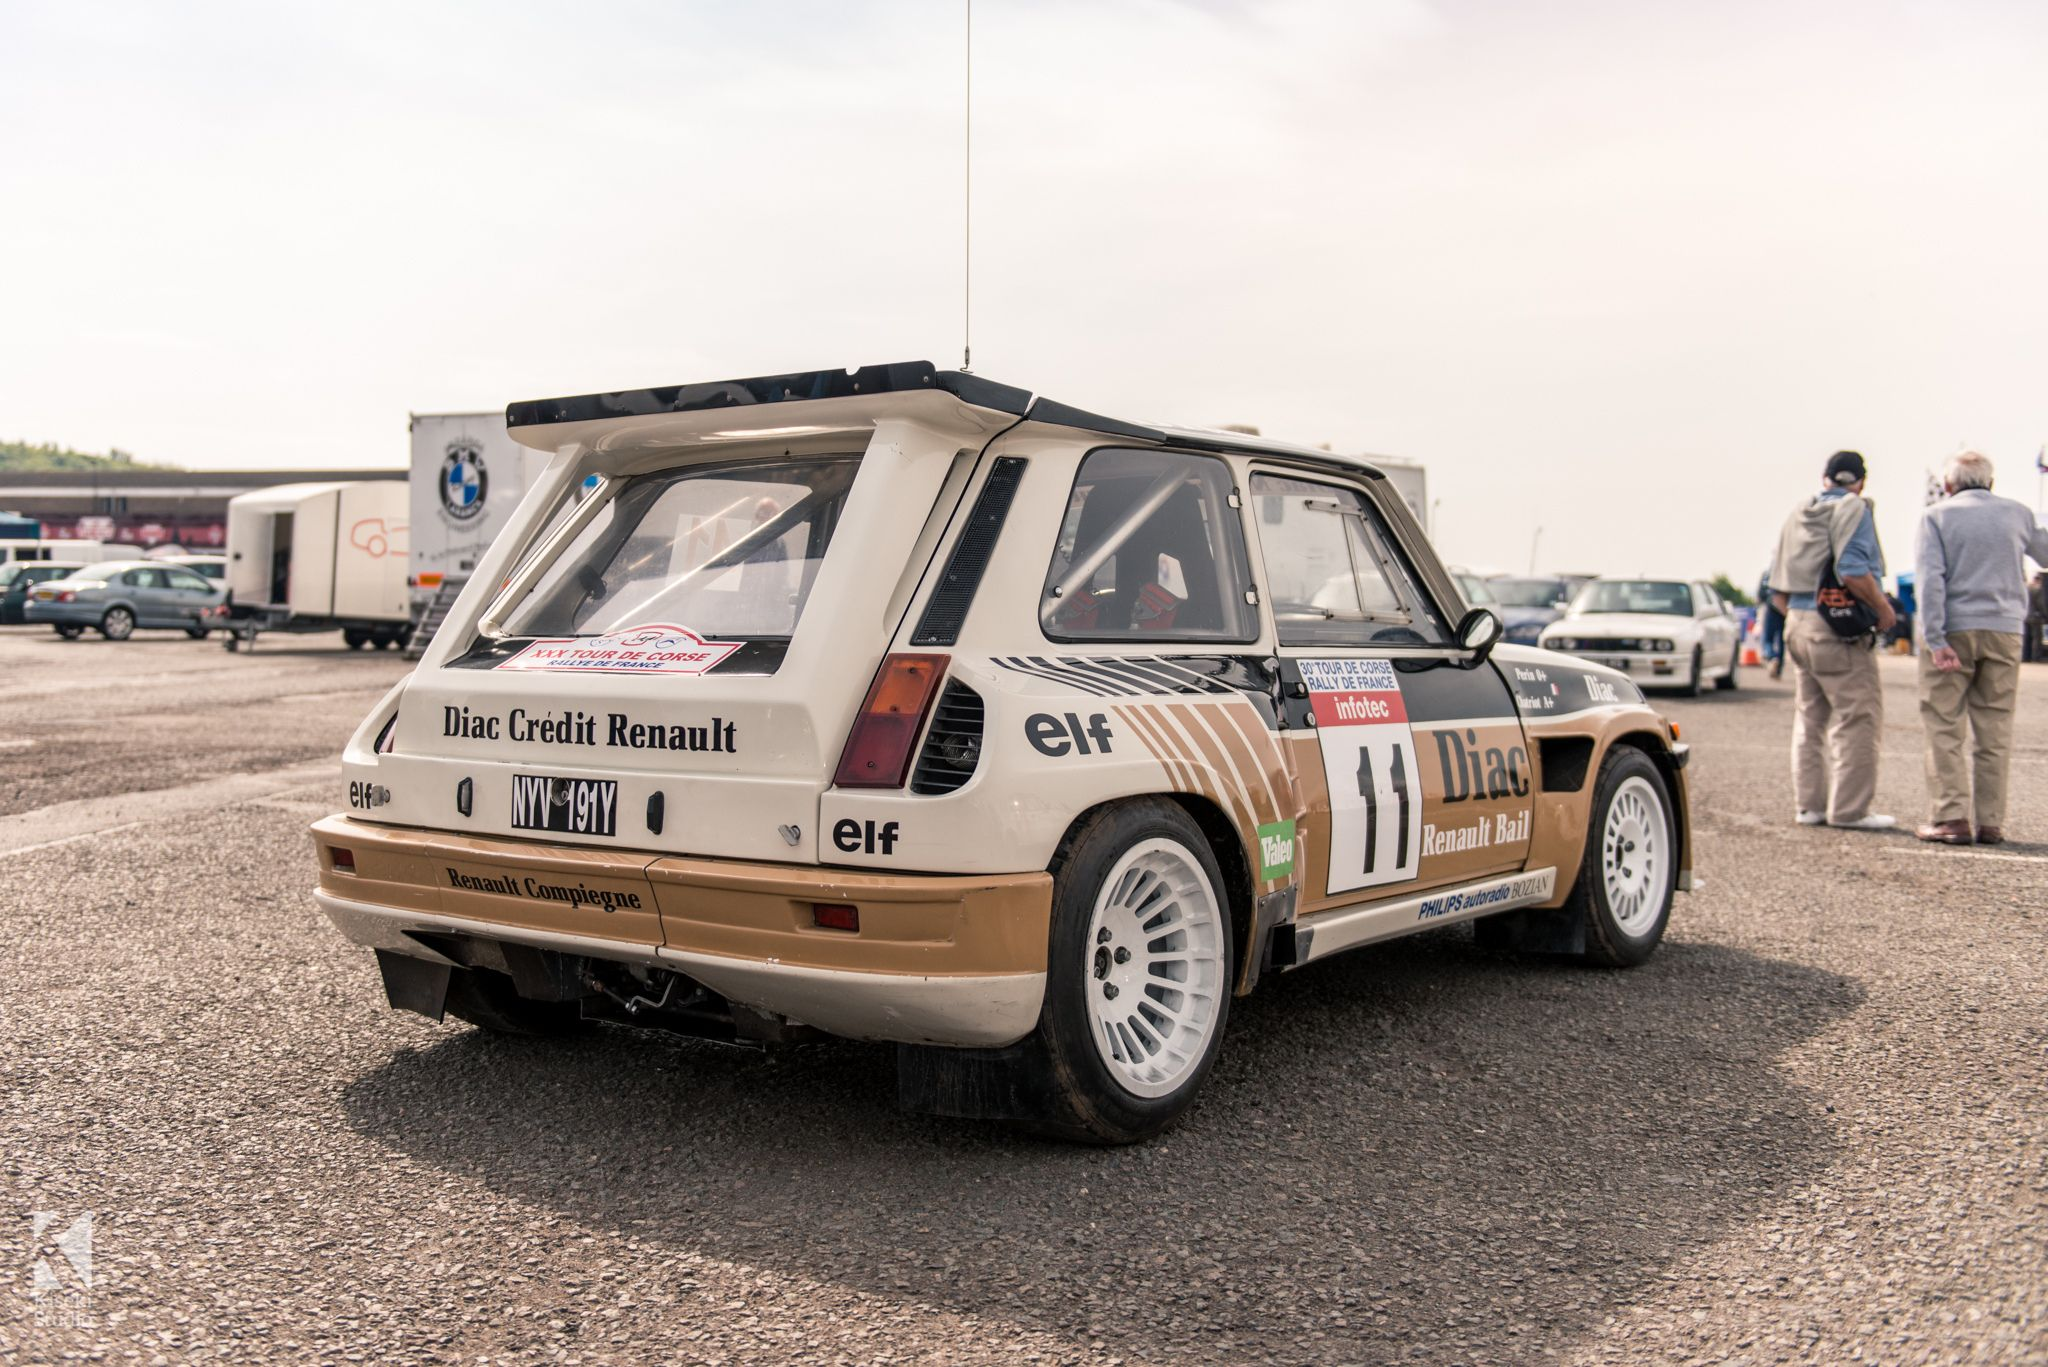 Ford escort mark i rally car ford motorsport pinterest rally car ford and cars